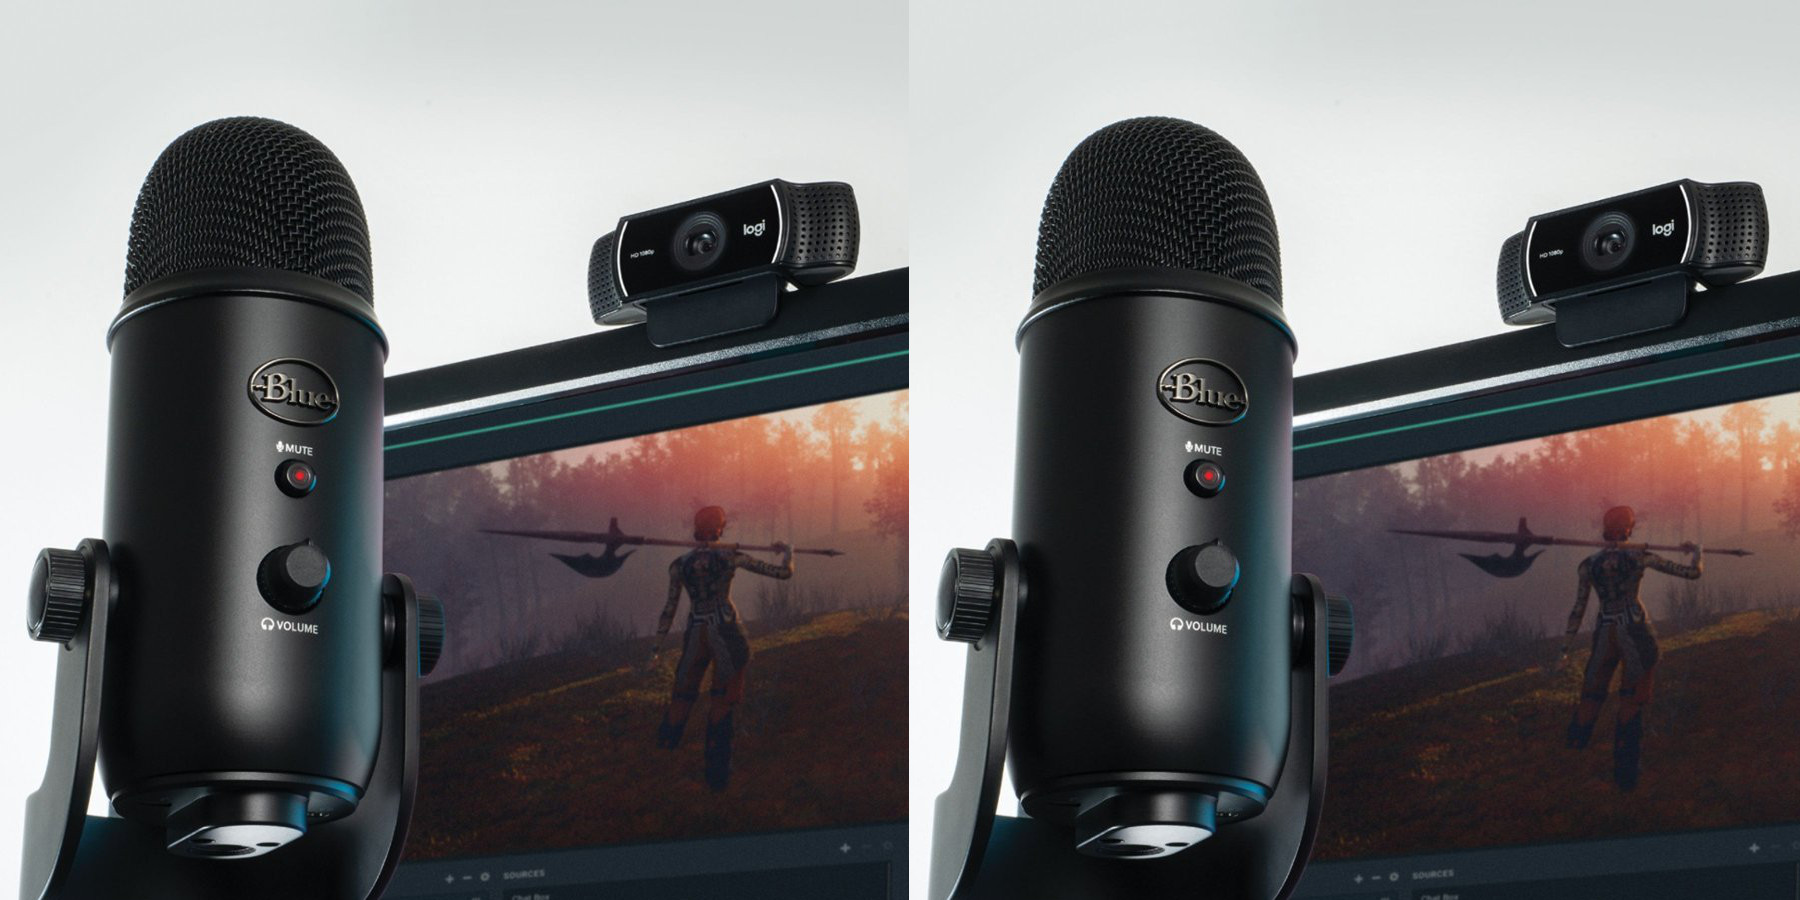 Pro Streamer Pack up to $60 off: Blue Yeti USB mic + Logitech webcam for $120